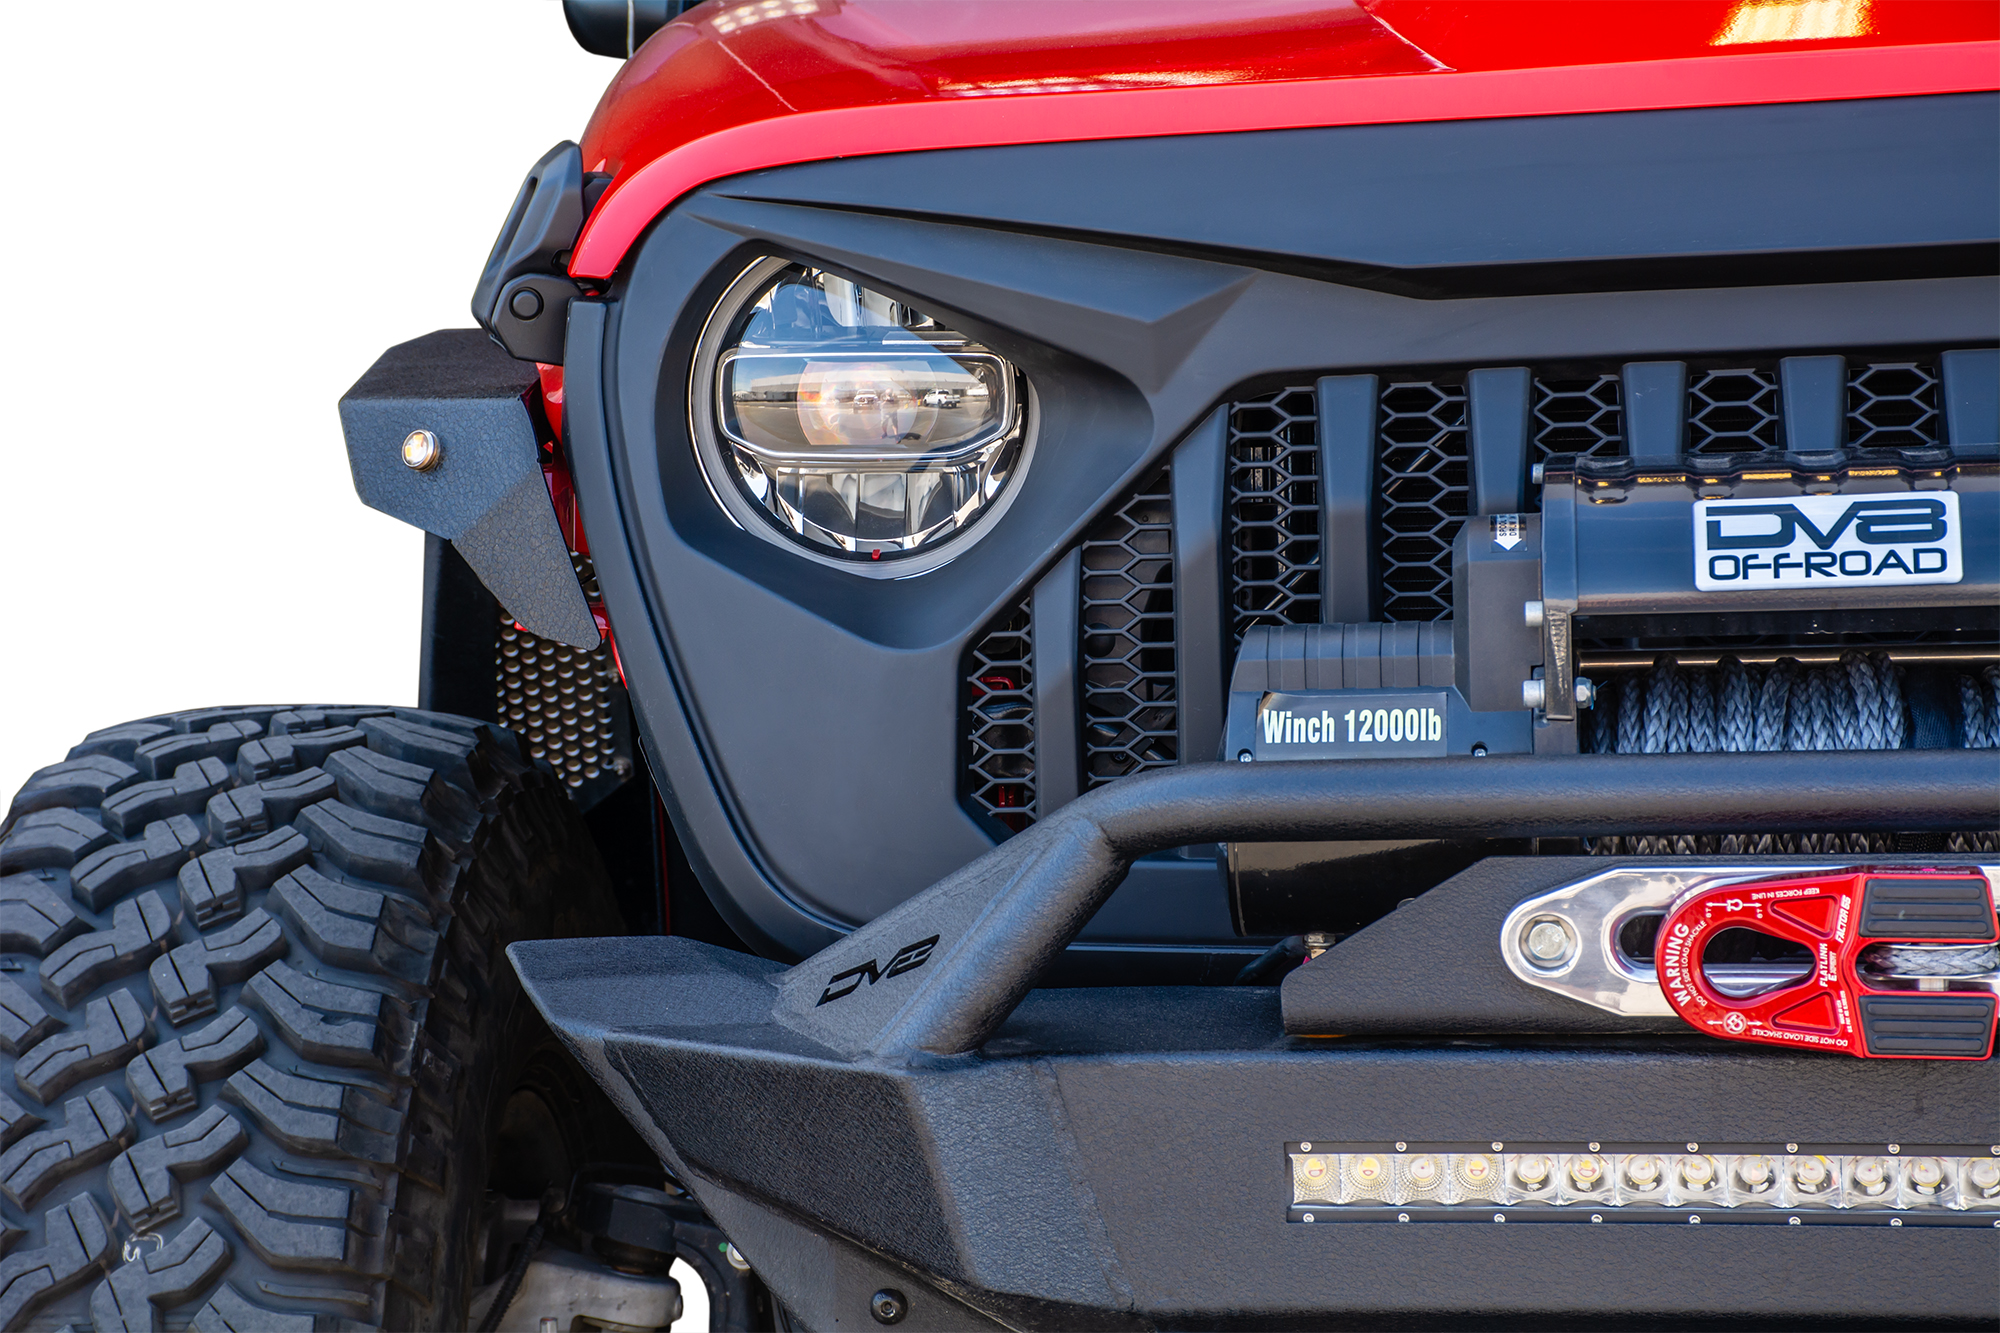 DV8 Offroad Jeep JL Replacement Grill Black DV8 Offroad